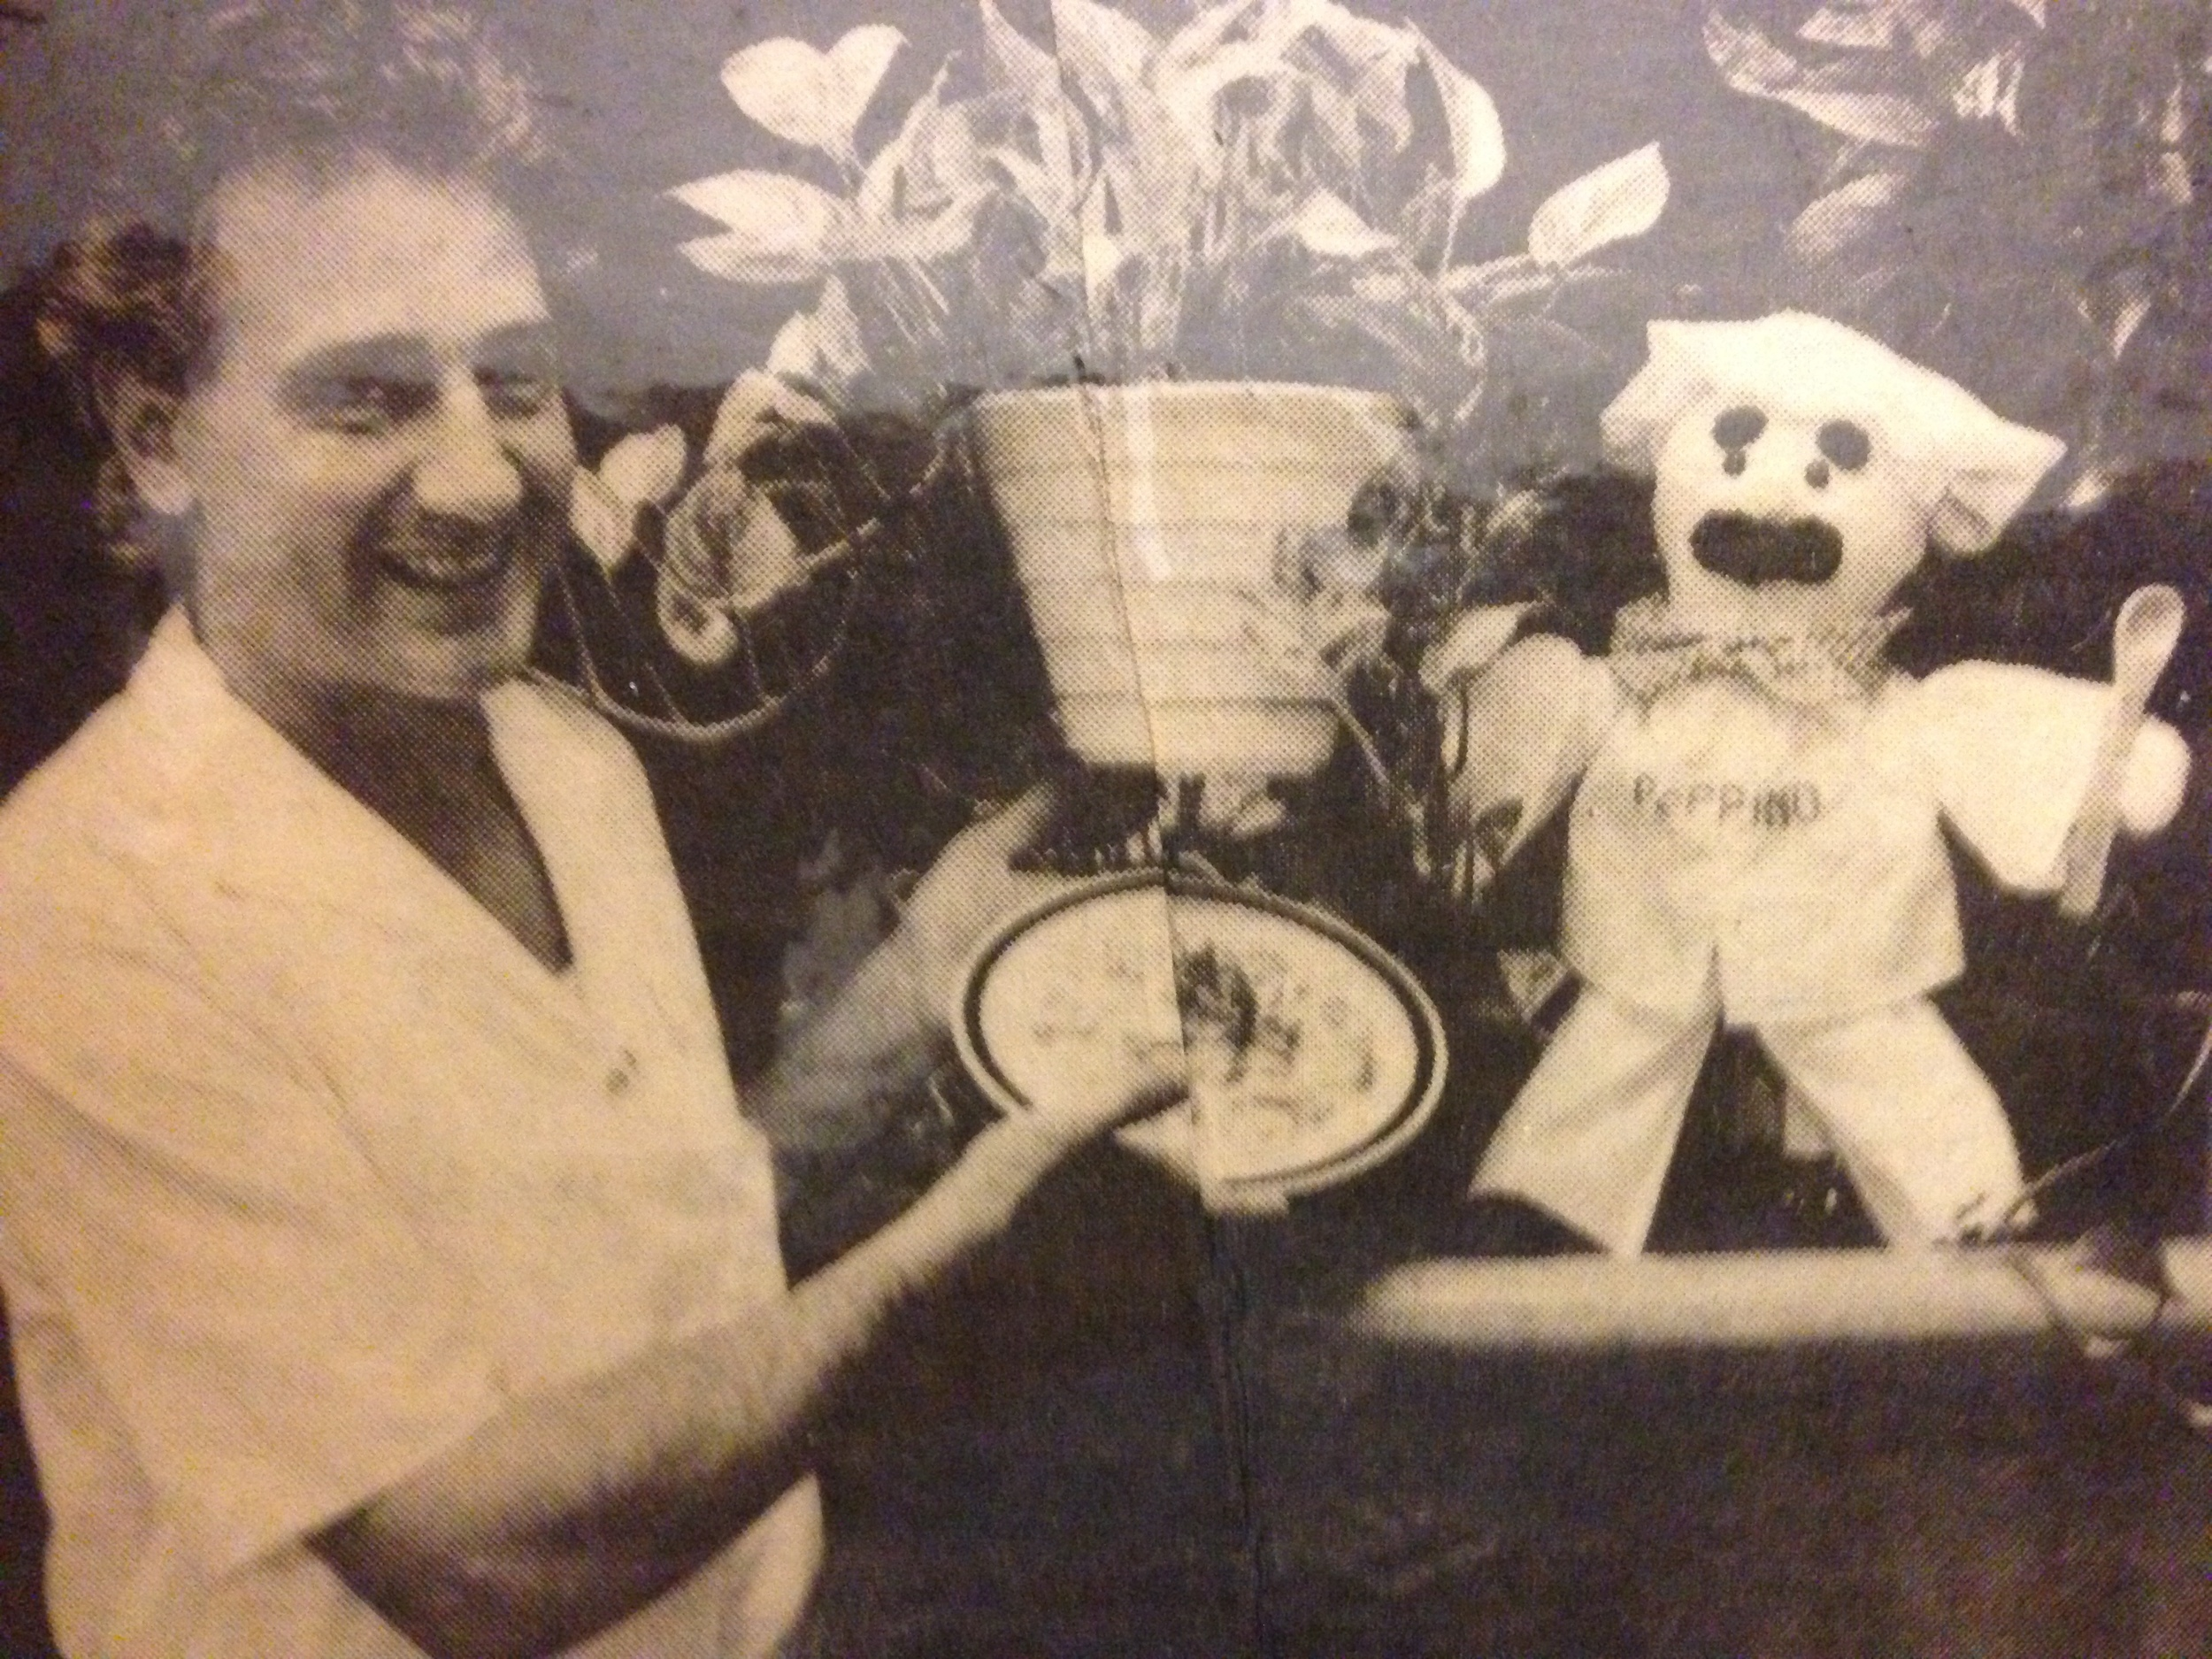 Chef Peppe Mazzella upon grand opening 87'.   Photo by EILEEN SAMELSON/ORLANDO SENTINEL   1987